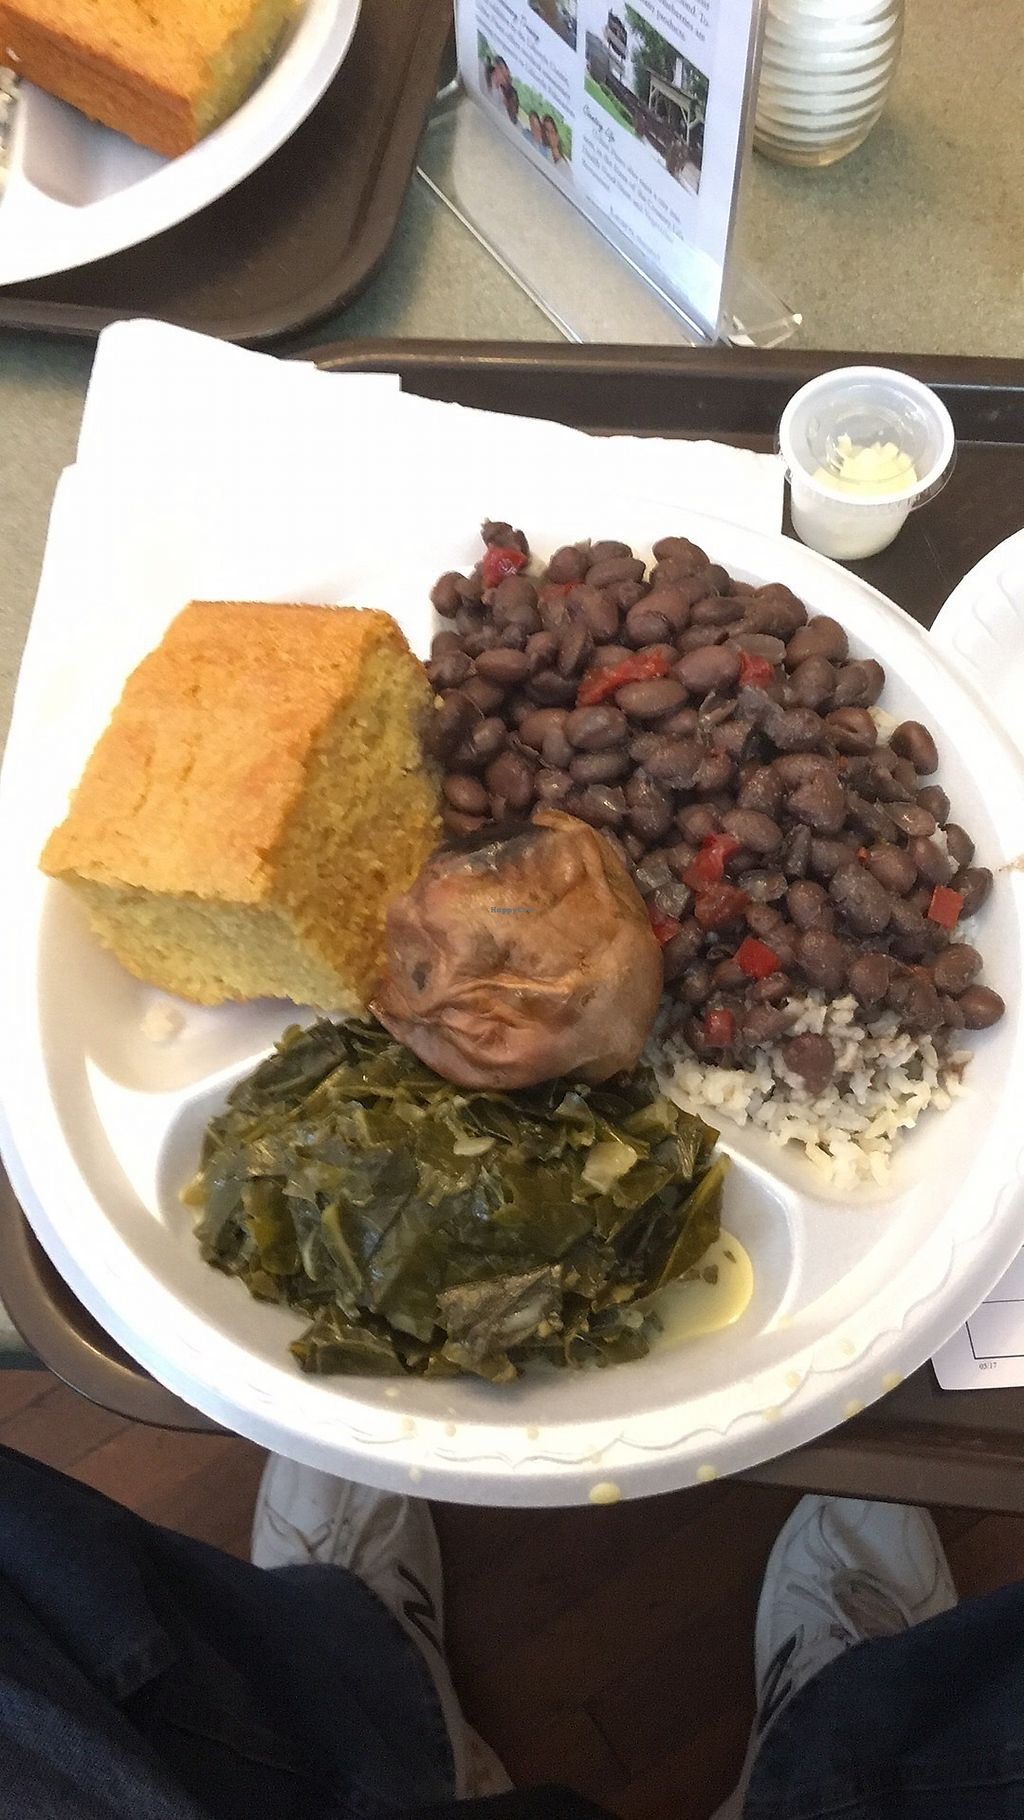 """Photo of Country Life  by <a href=""""/members/profile/jpakin"""">jpakin</a> <br/>My lunch at Country Life vegitarian restaurant located on Columbus, Georgia <br/> July 14, 2017  - <a href='/contact/abuse/image/1903/280181'>Report</a>"""